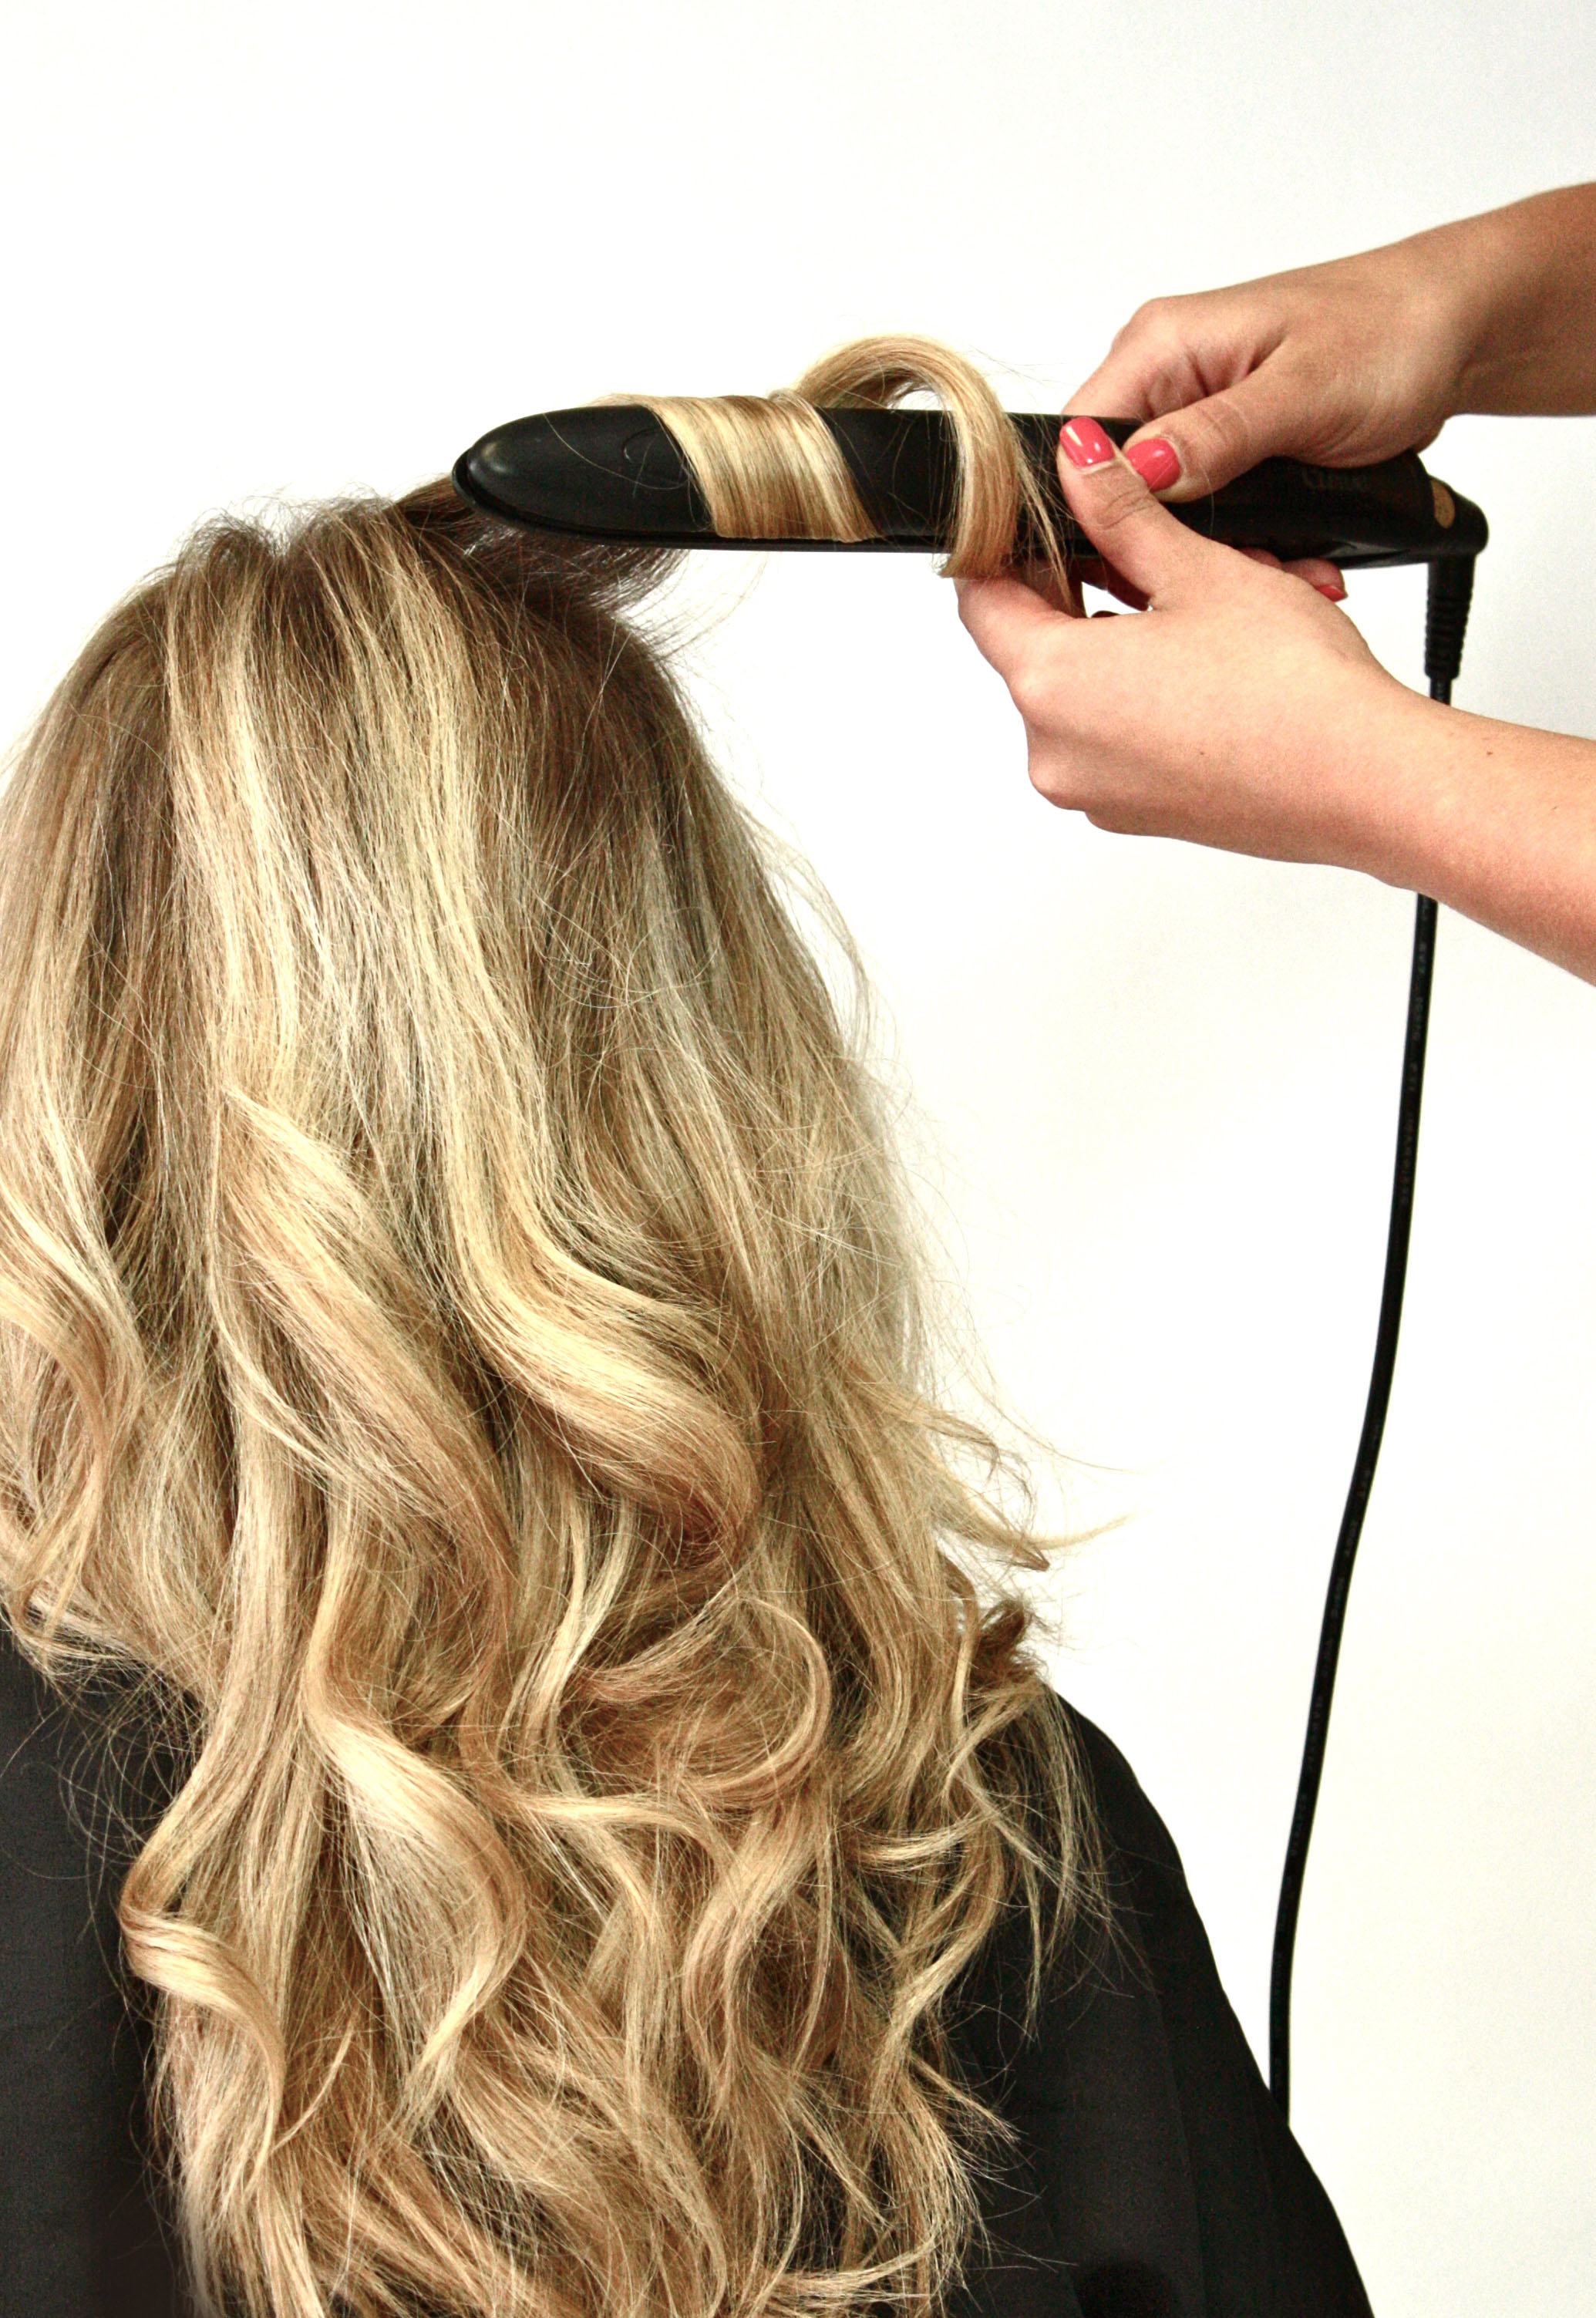 Curling With The Curve Flat Iron Siggershairdresserss Blog